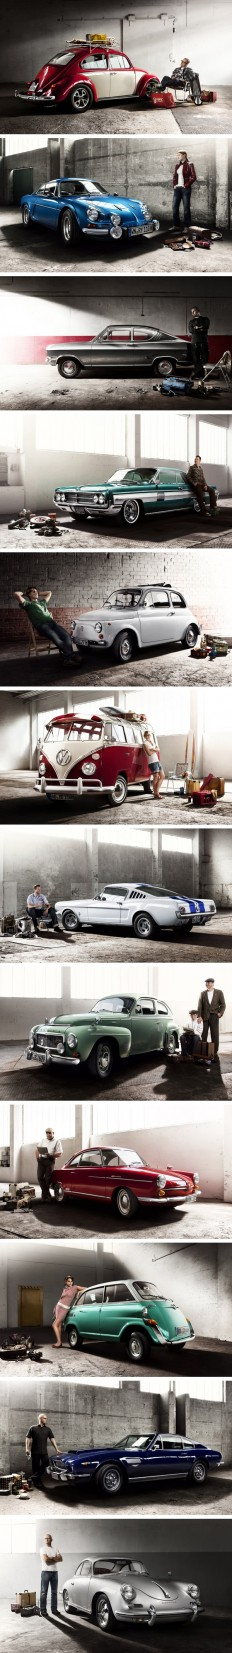 Retro Colleccion del Oldtimer Calendar por Mirko Frank | Inspiration | Pinterest